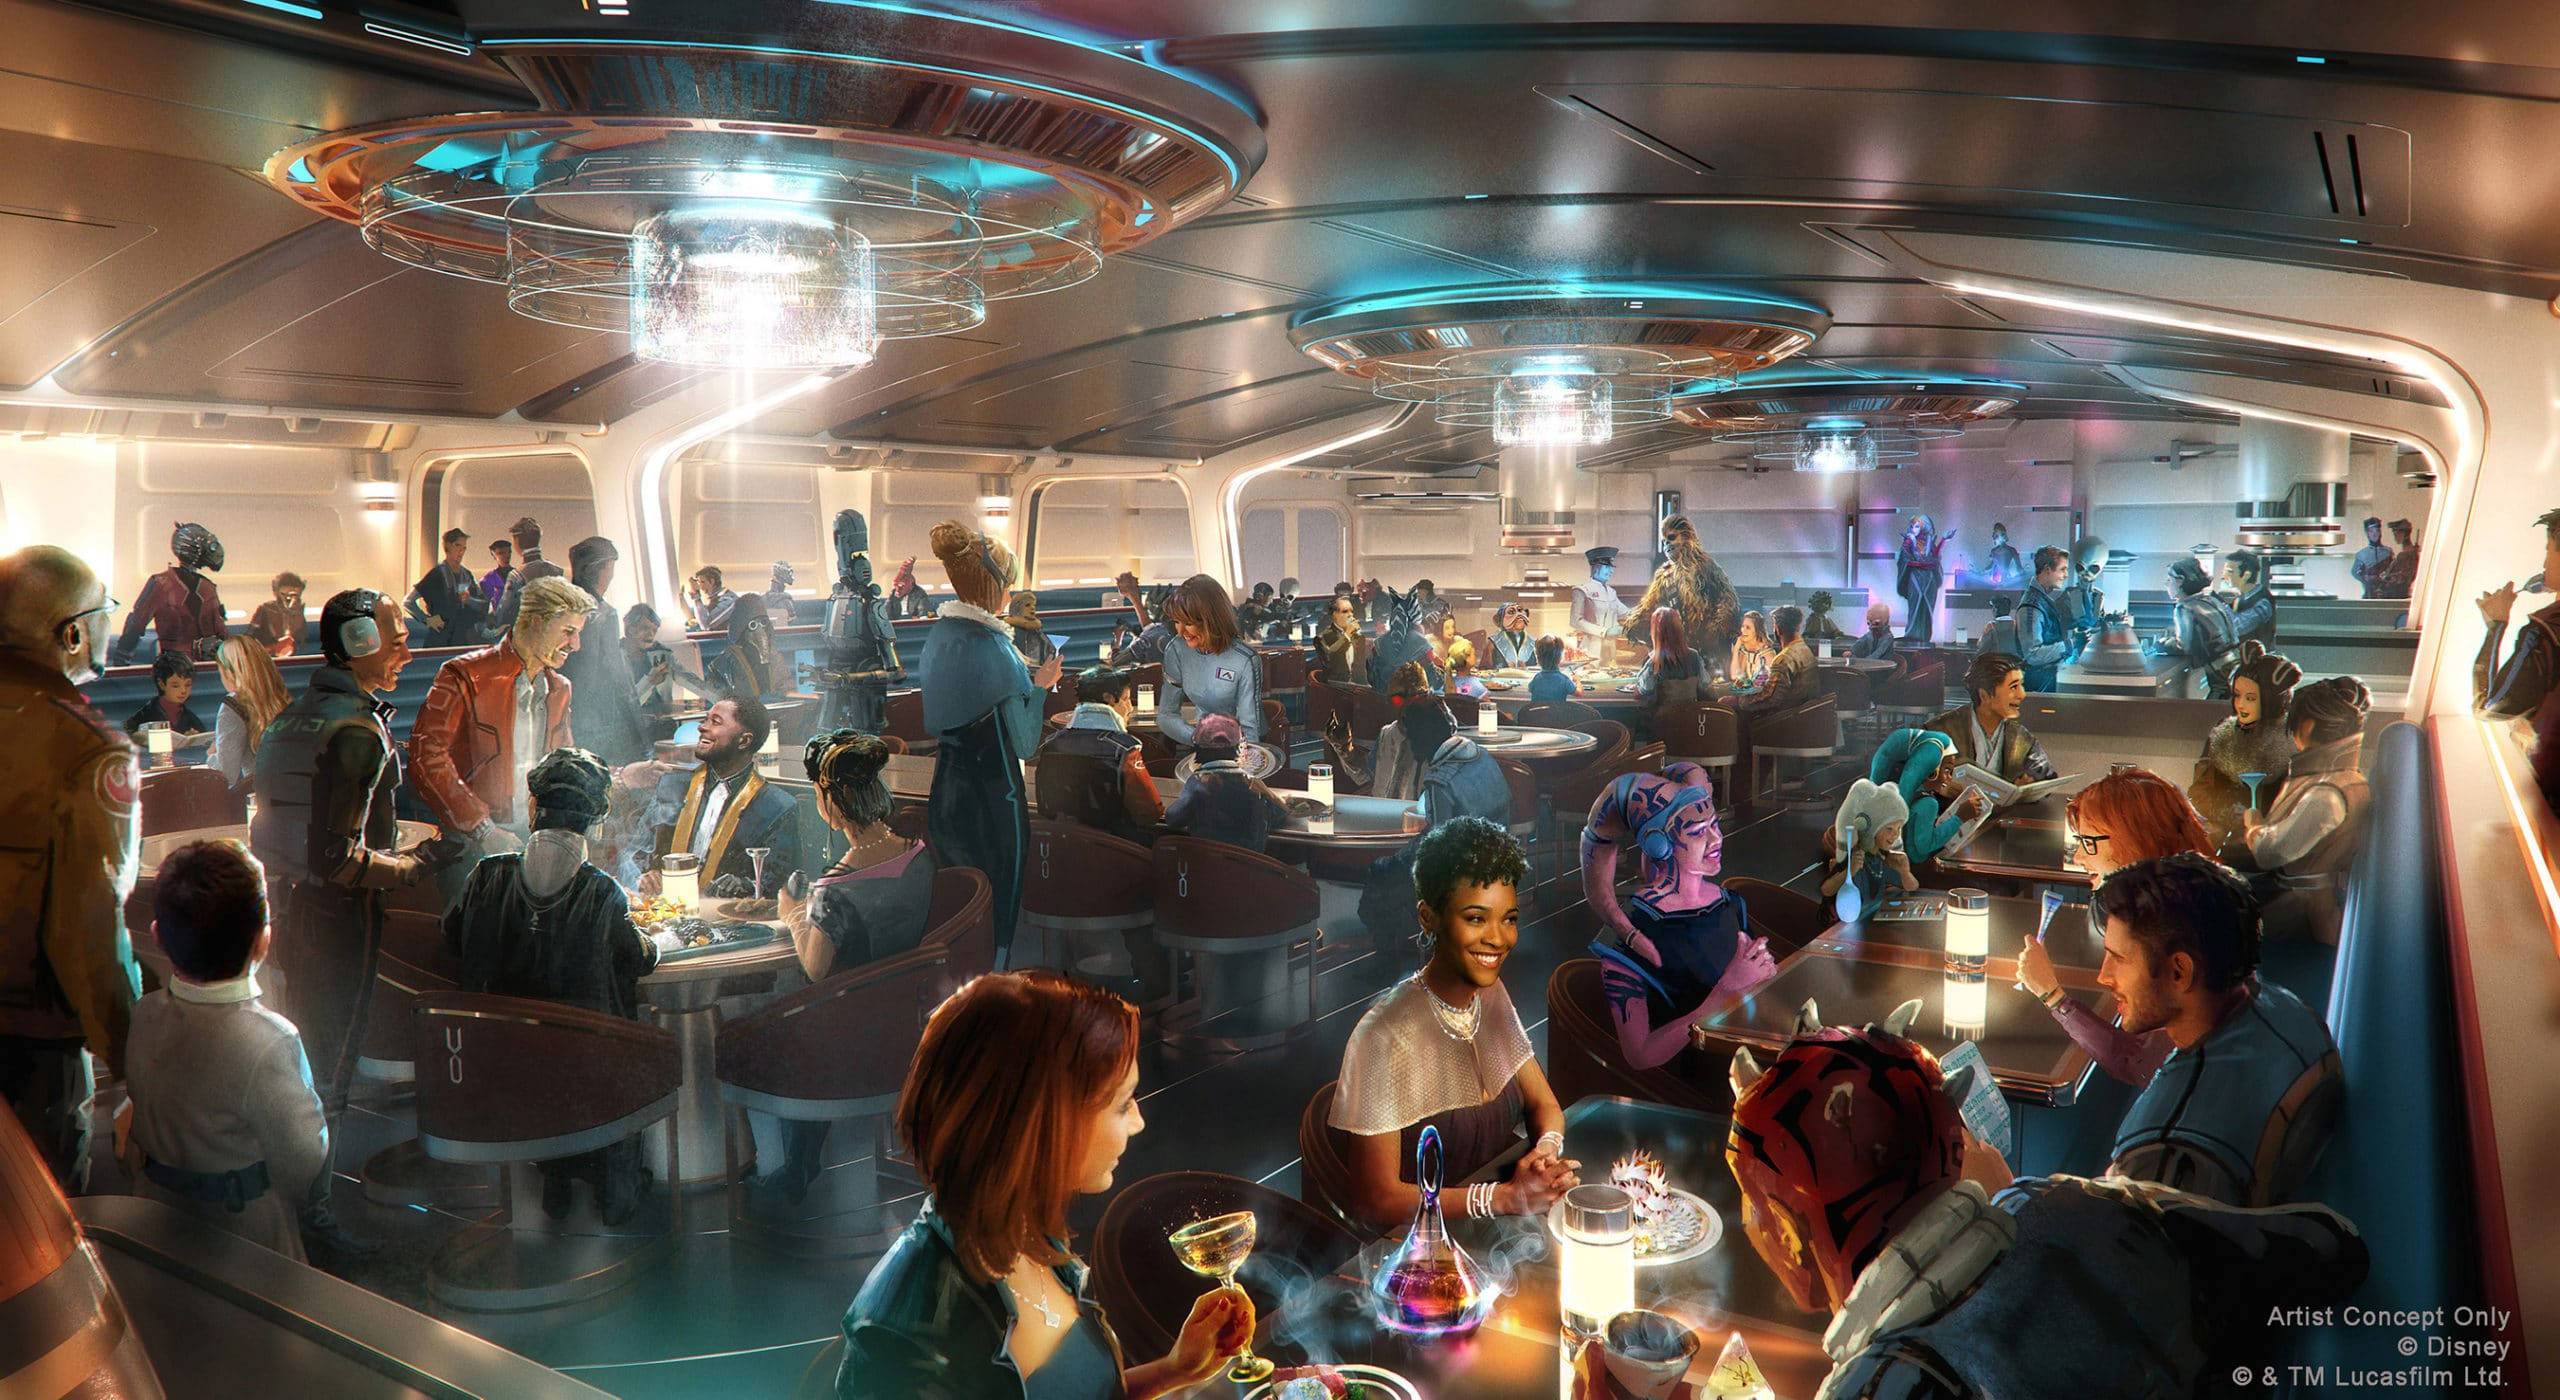 Star Wars: Galactic Starcruiser is opening at Disney World in 2022 18